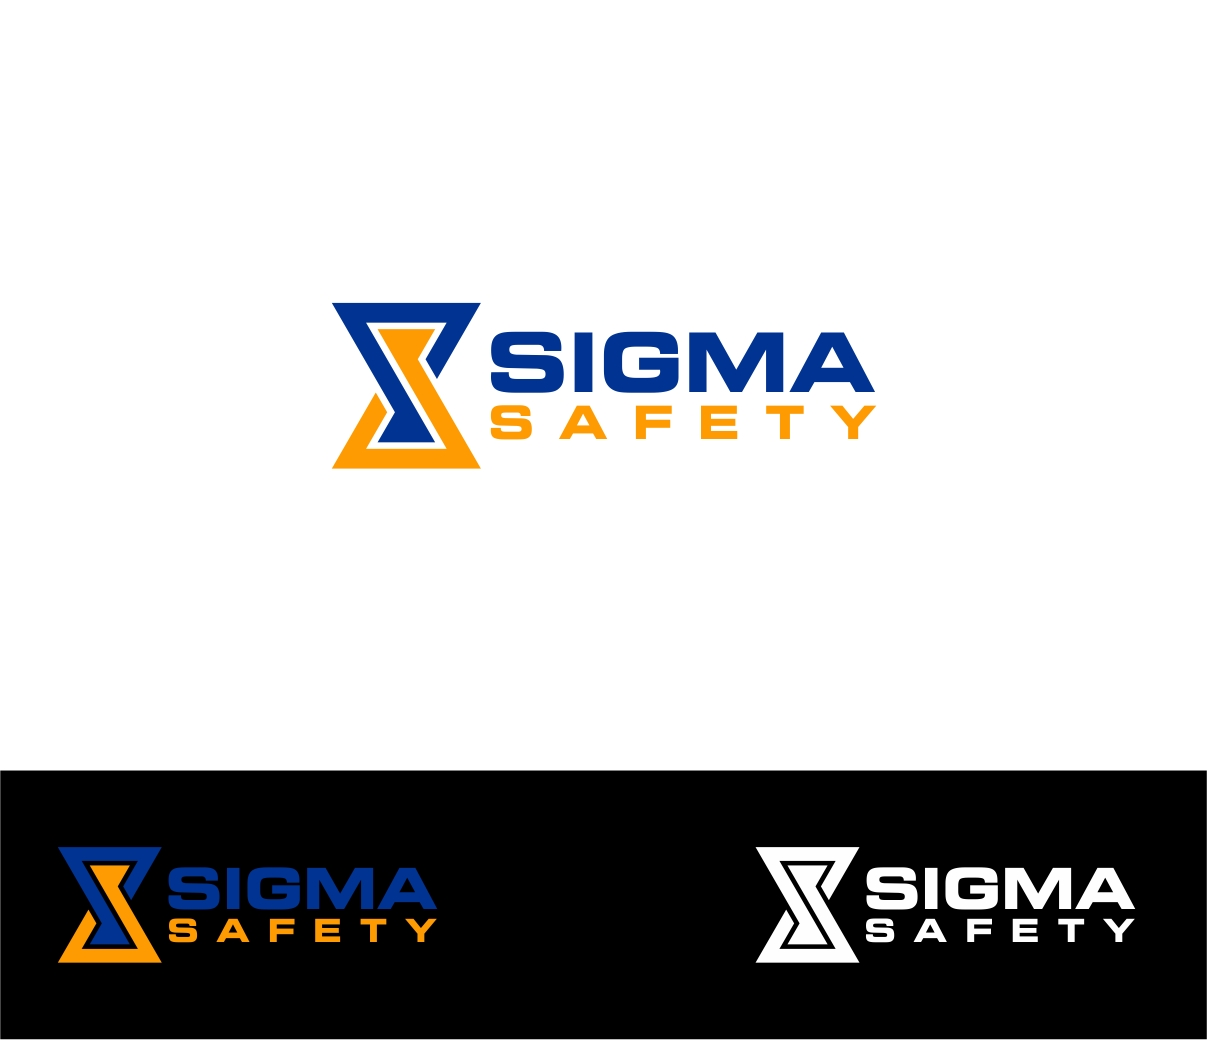 Logo Design by haidu - Entry No. 47 in the Logo Design Contest Creative Logo Design for Sigma Safety Corporation.